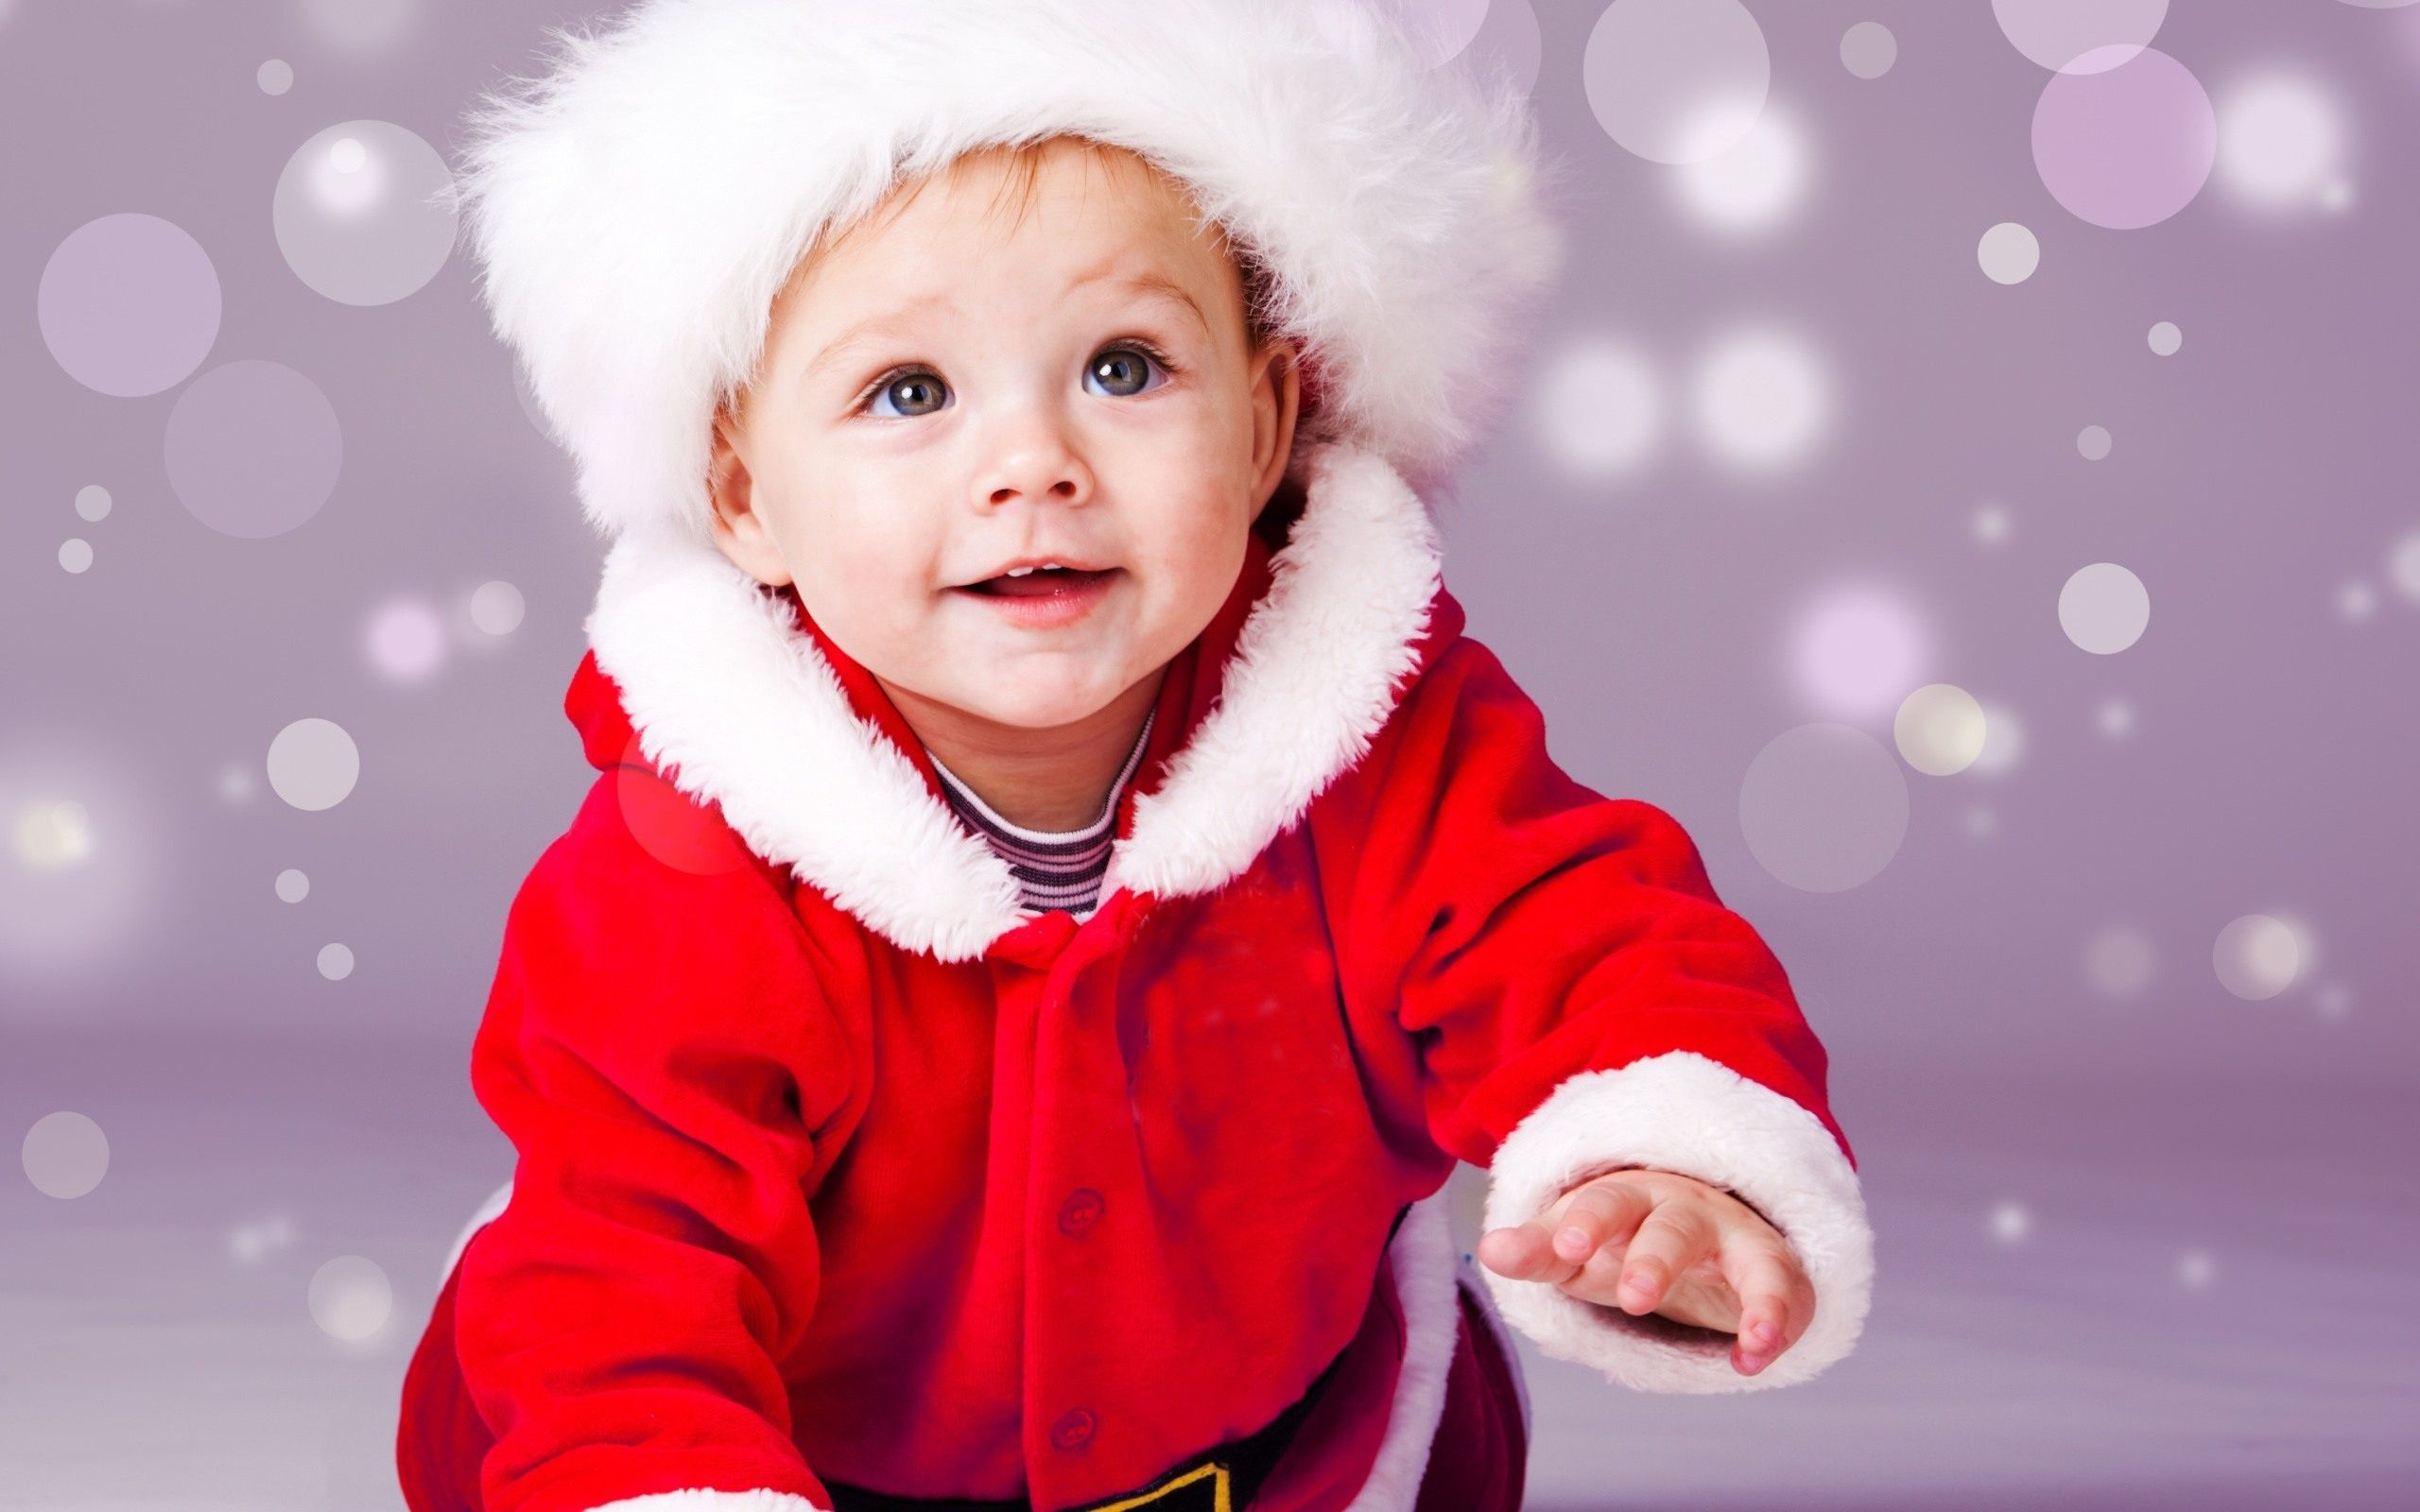 Cute Baby Boy Images Download